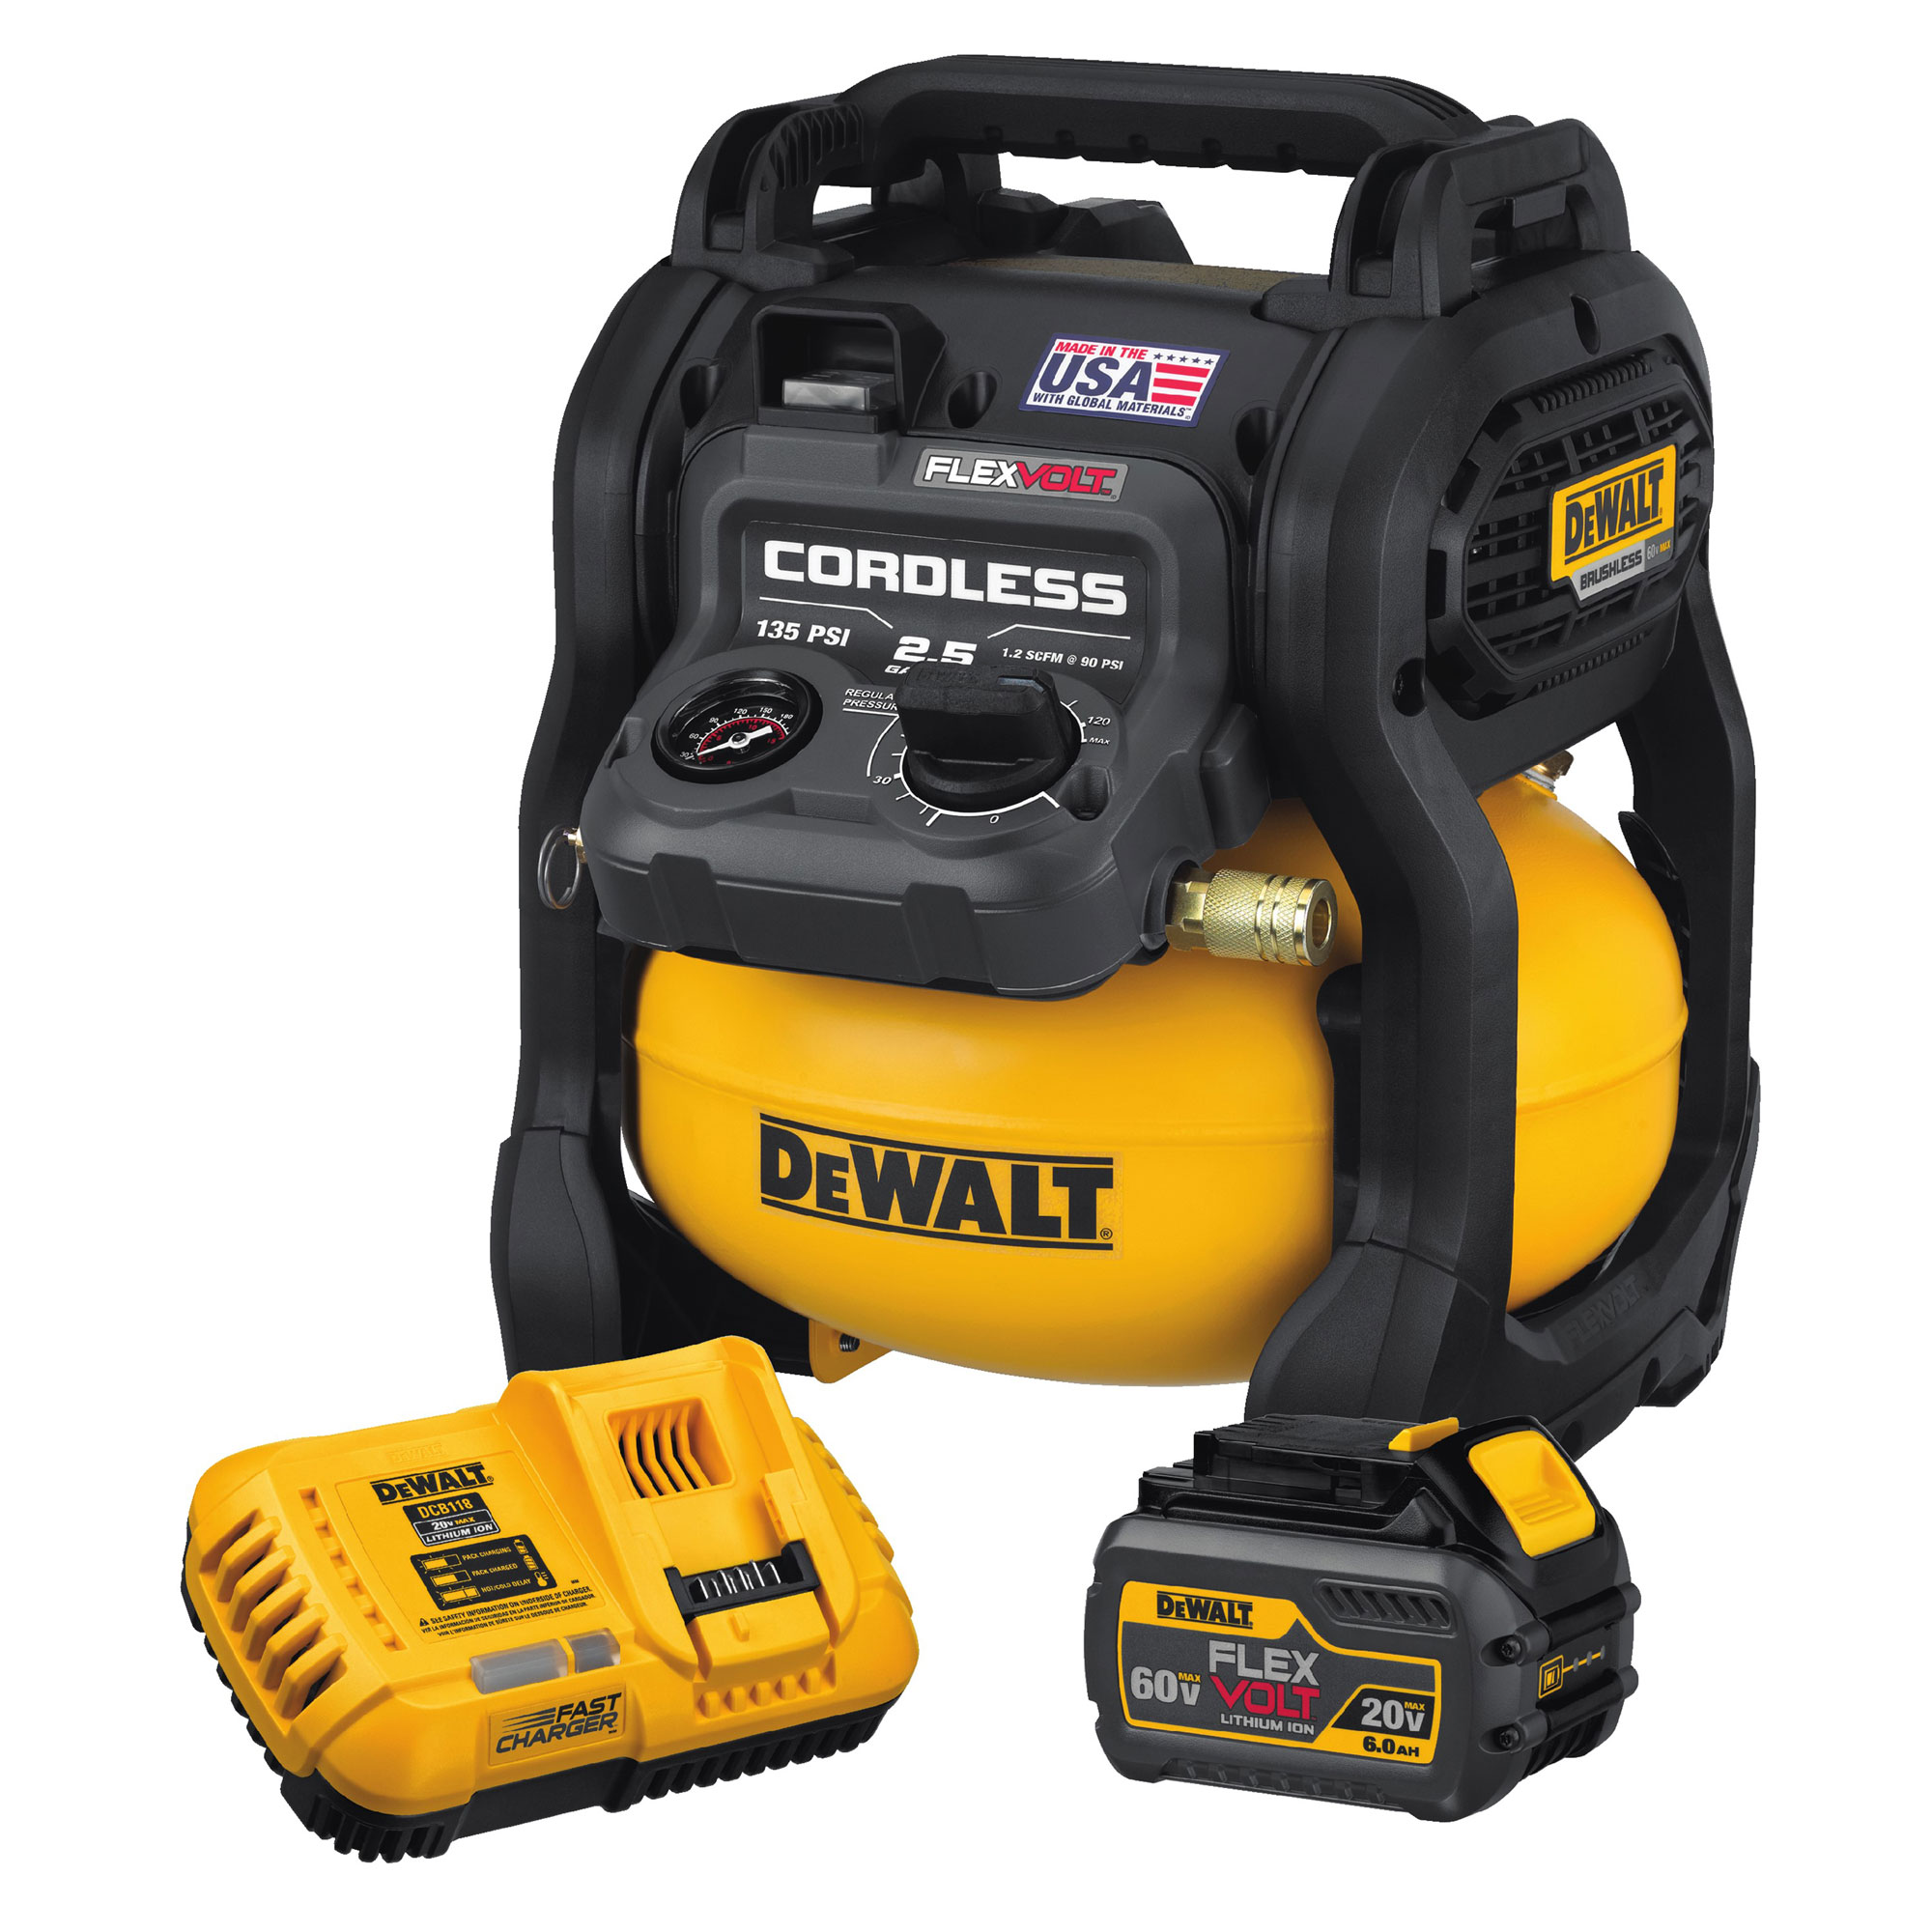 Portable Compressor From Dewalt Concrete Construction